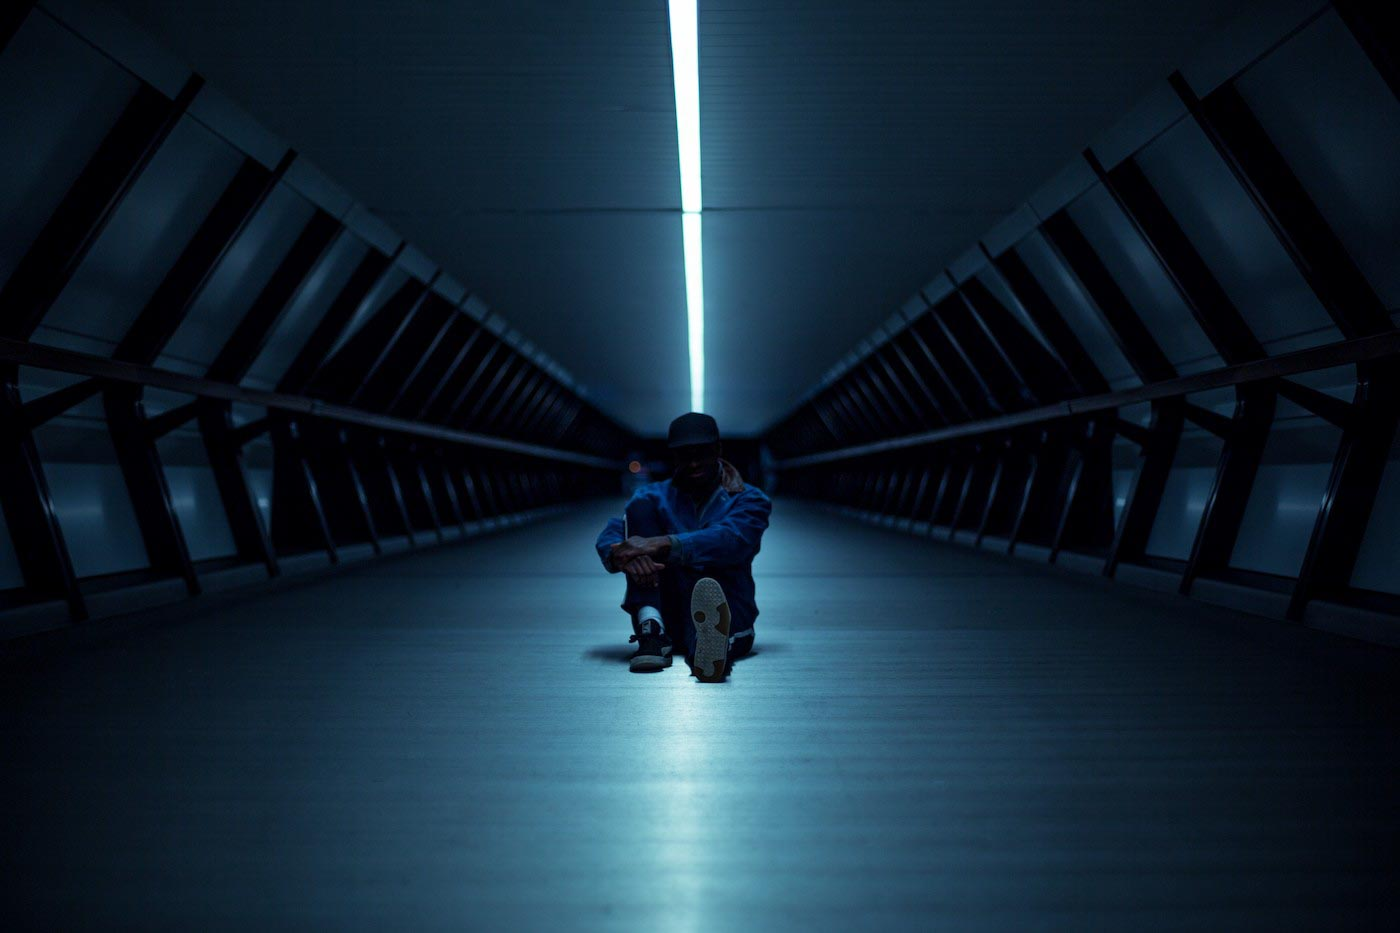 Silhouette of rapper, Timo, sitting in a dark corridor, lit by one continuous white neon light down the hall, at Adam's Place, Canary Wharf, London